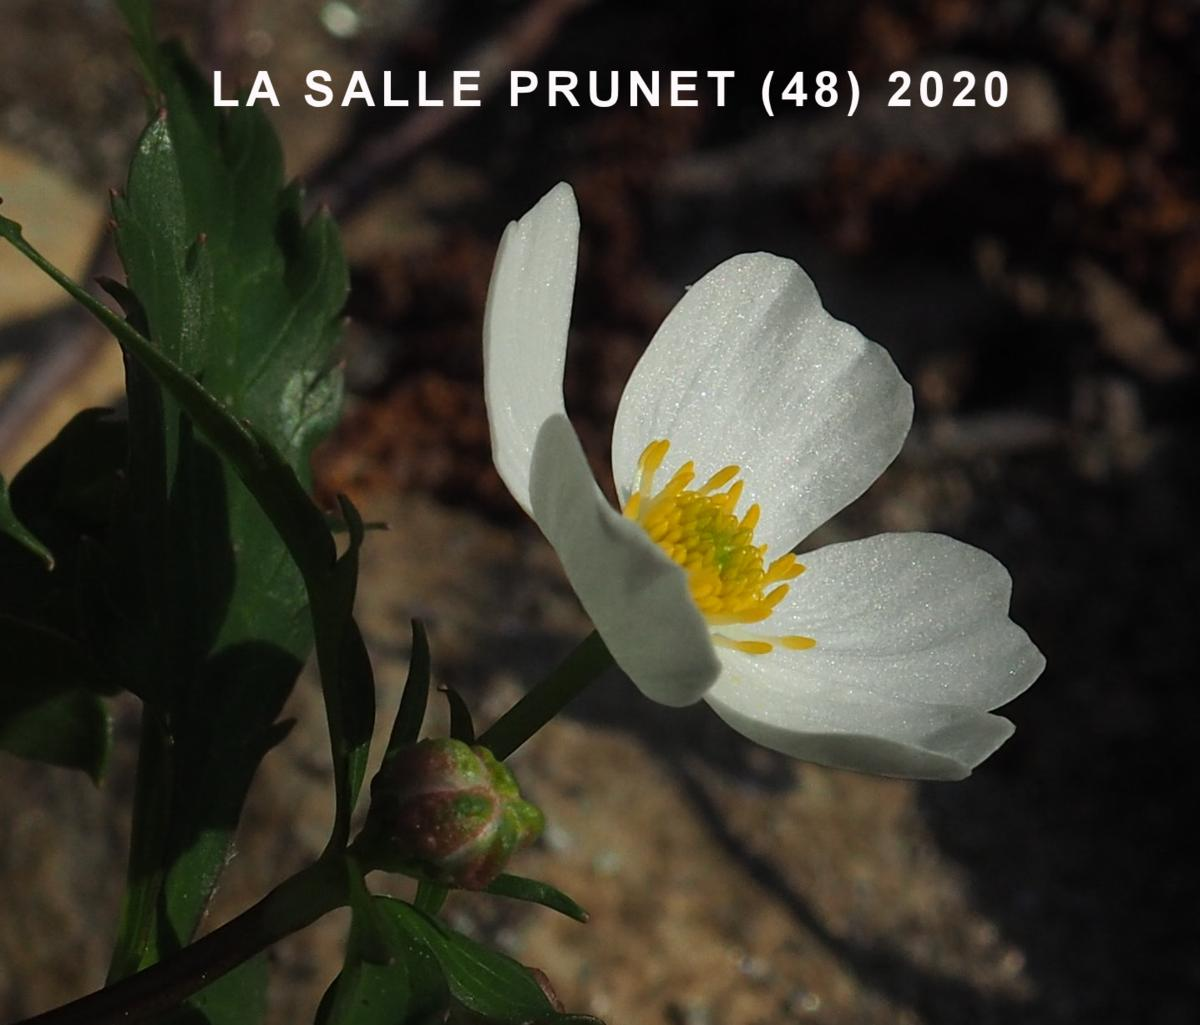 Buttercup, White flower